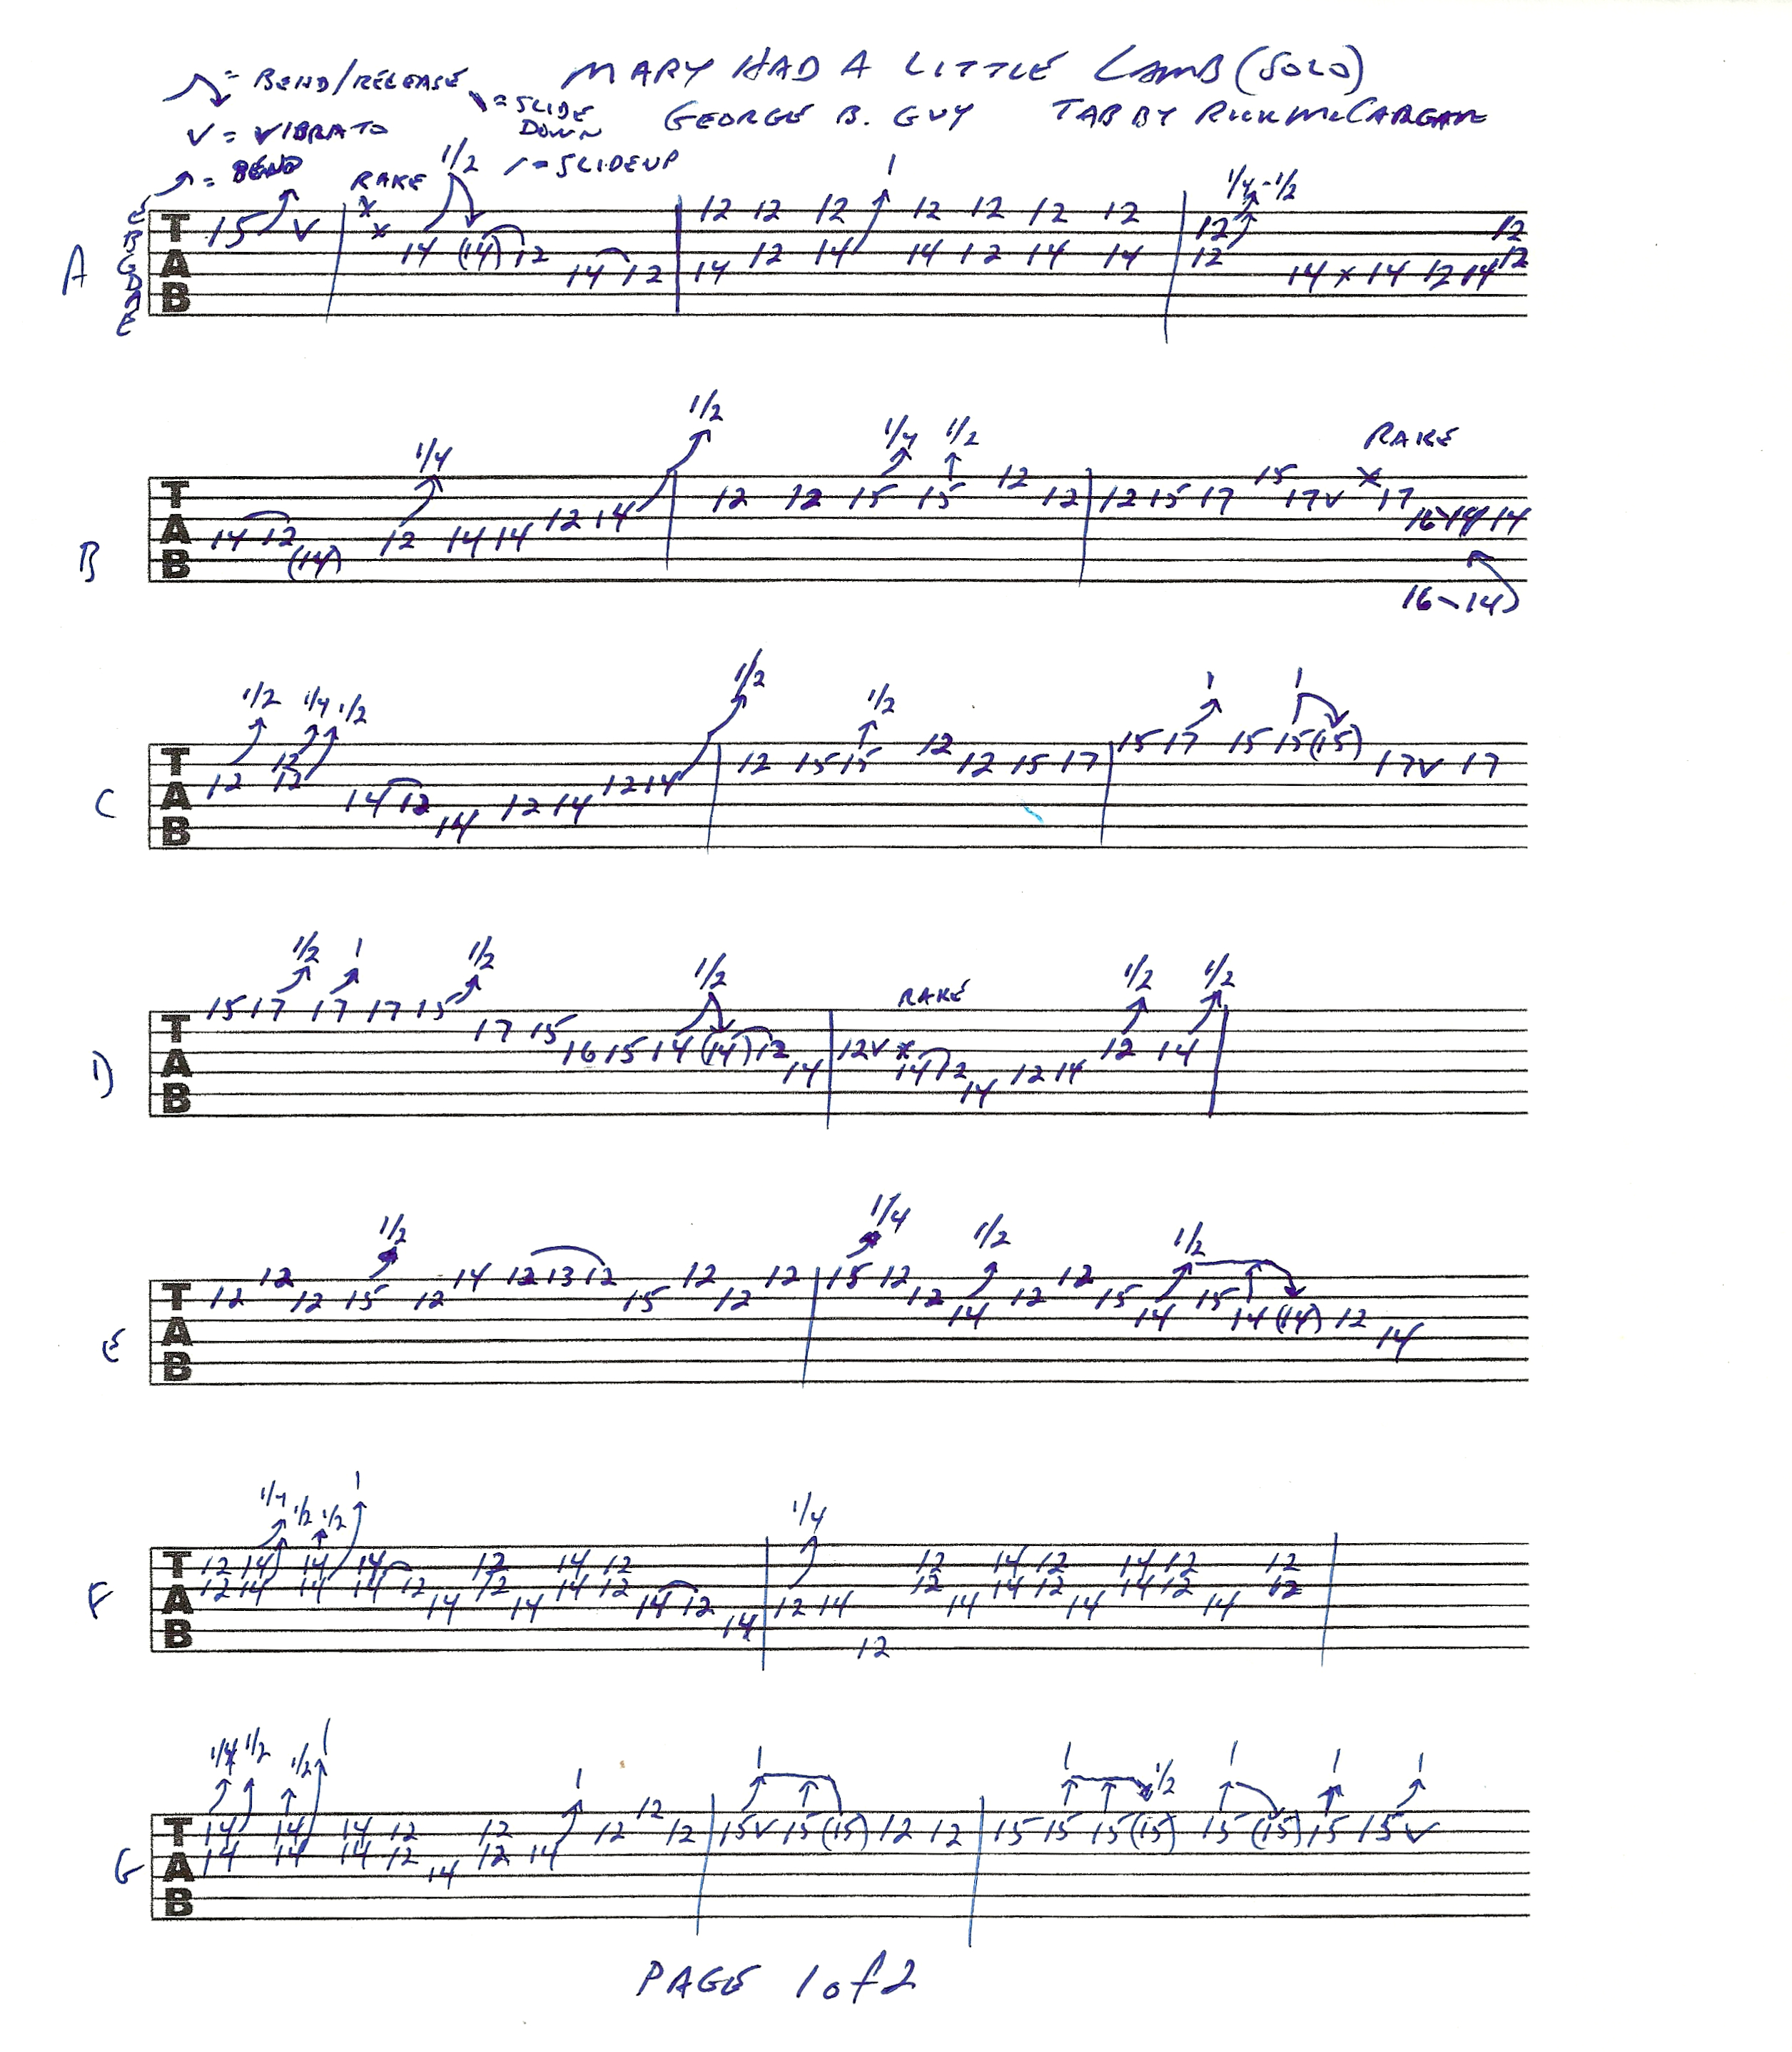 Stevie Ray Vaughan u2013 Mary Had A Little Lamb guitar lesson with tablature : Rick McCargaru0026#39;s ...